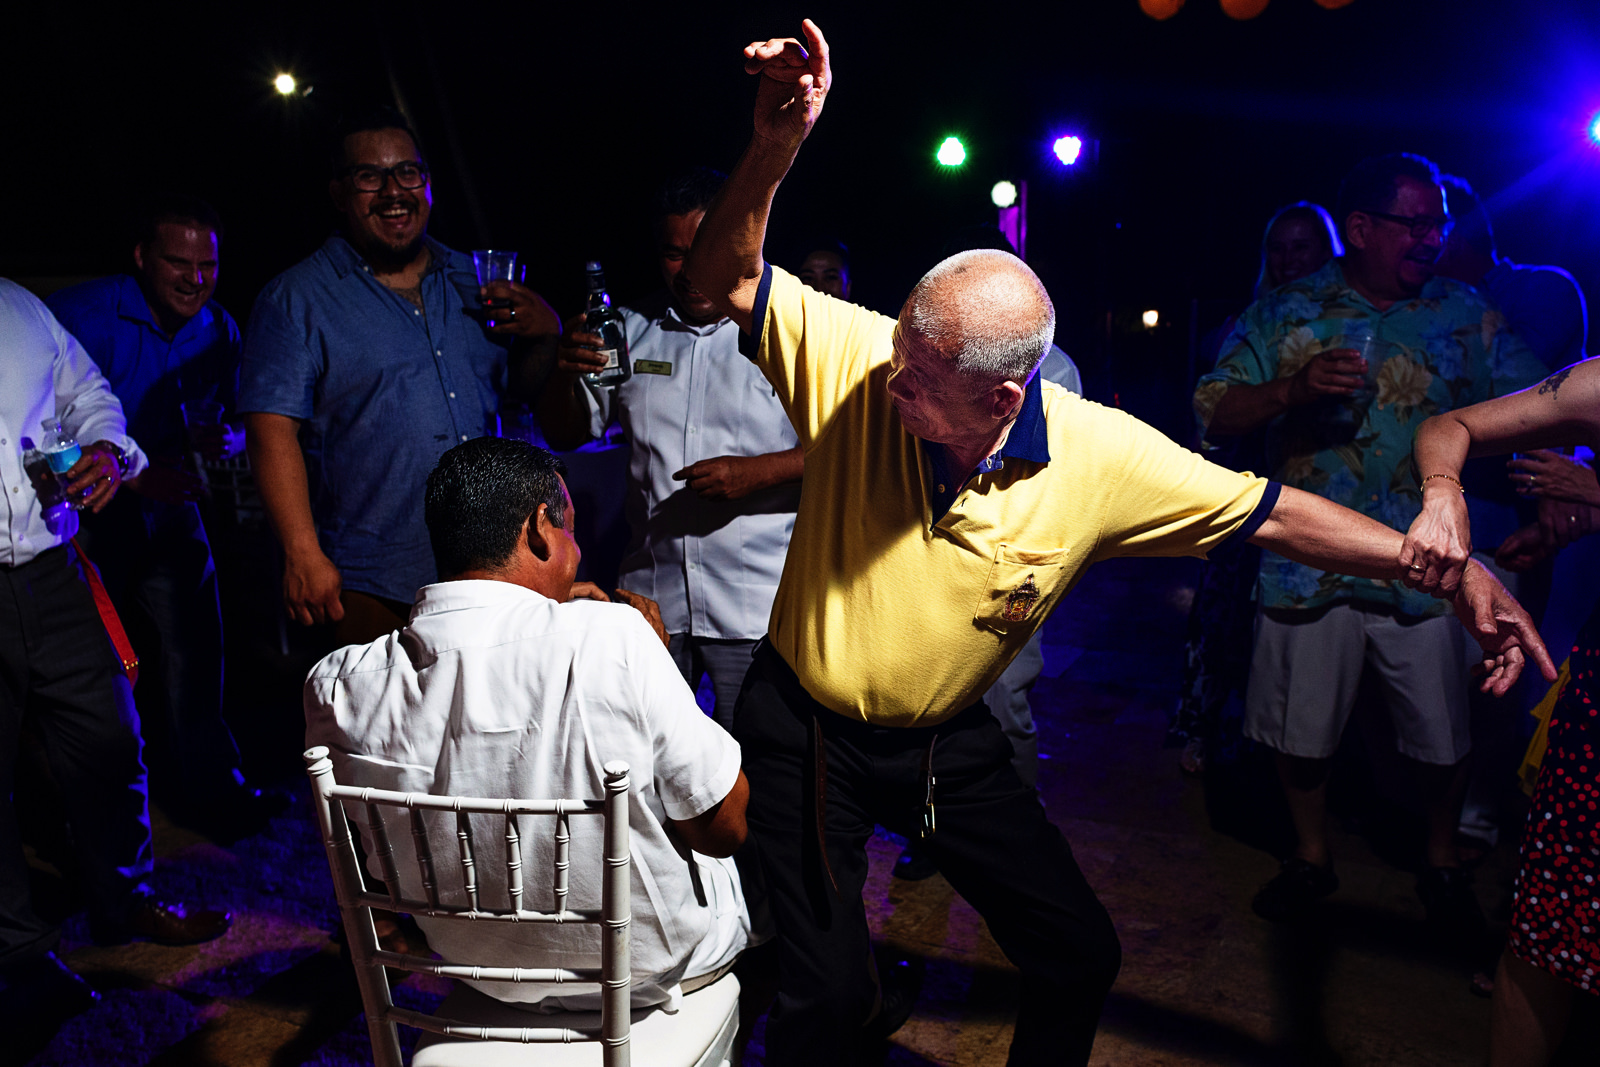 Father of the bride trying to do a lap dance as he is being controlled by his wife